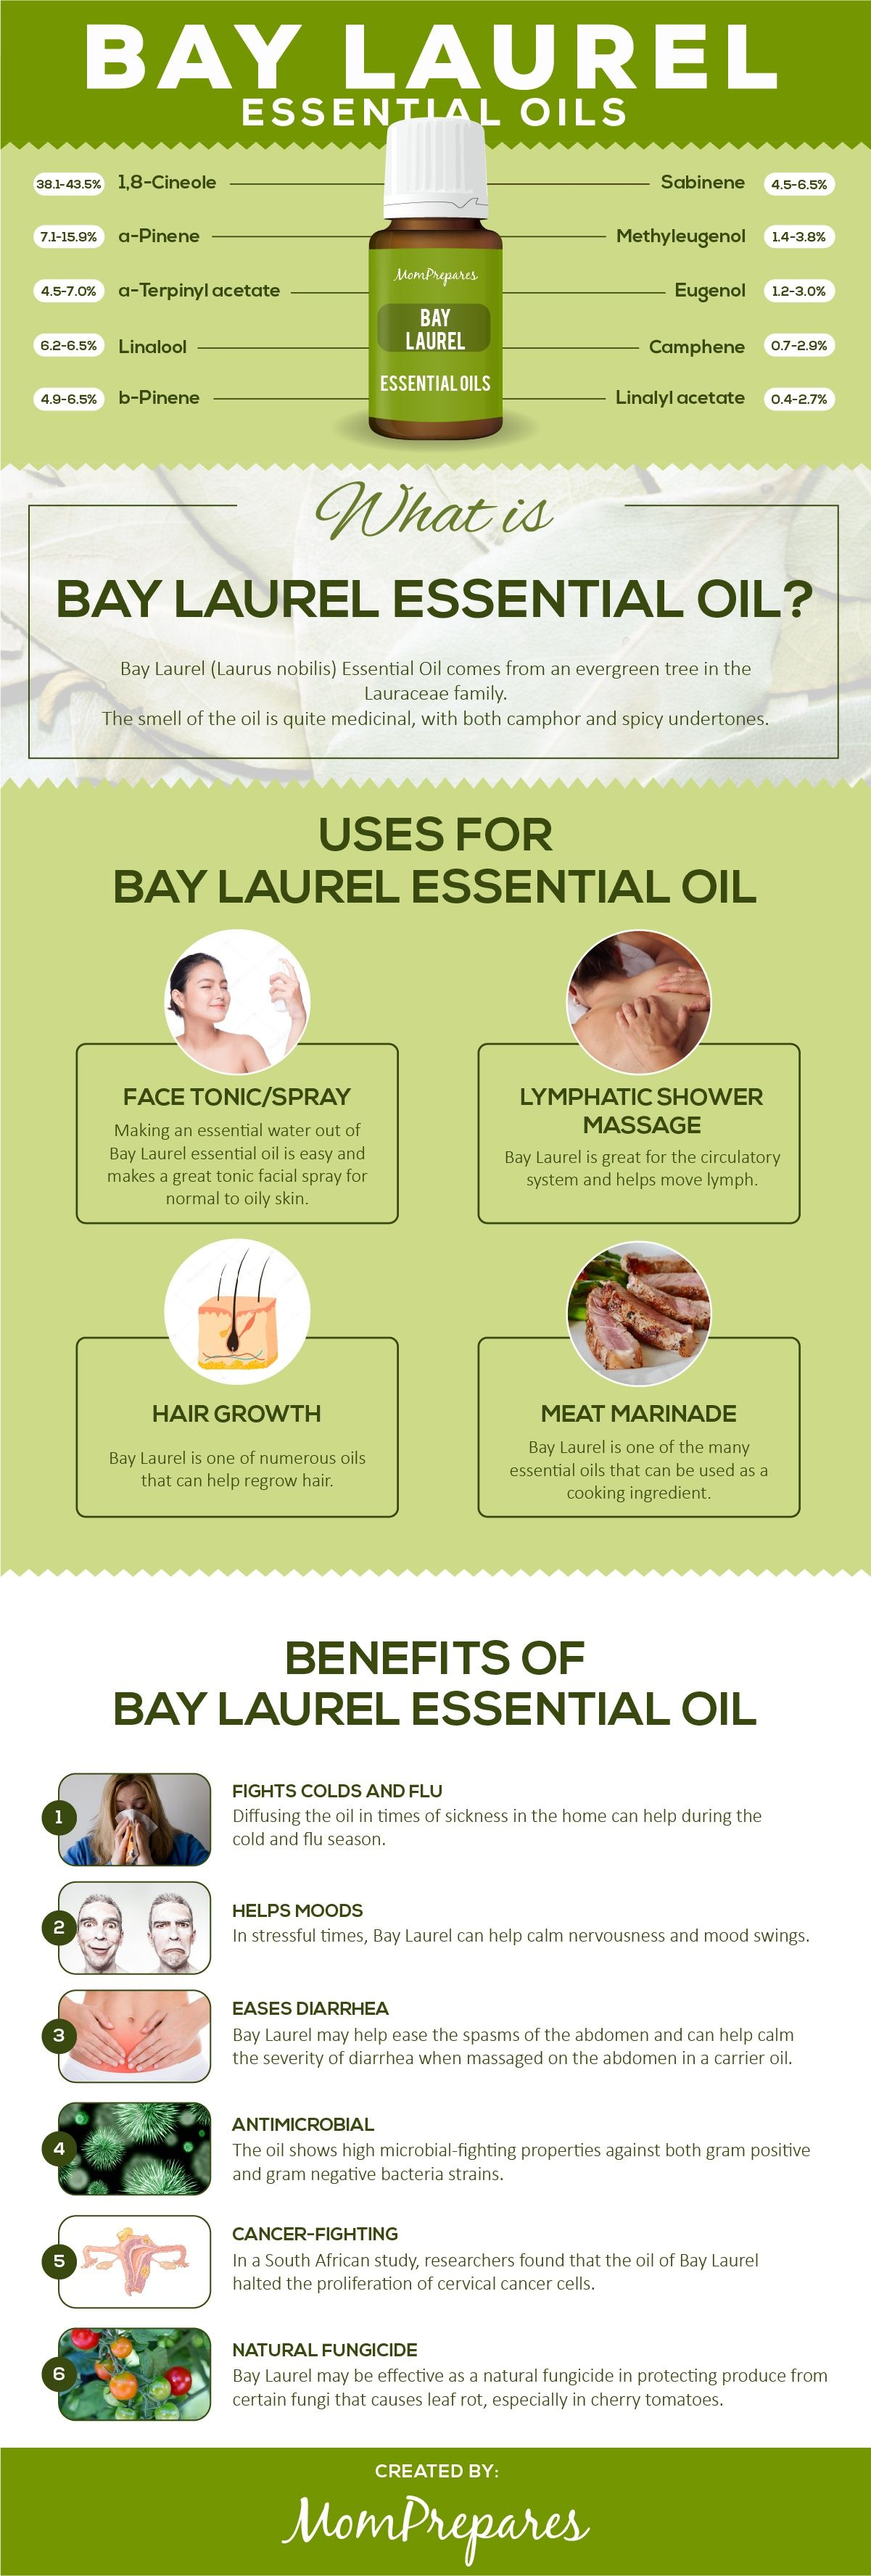 Bay essential oil laurel the complete uses and